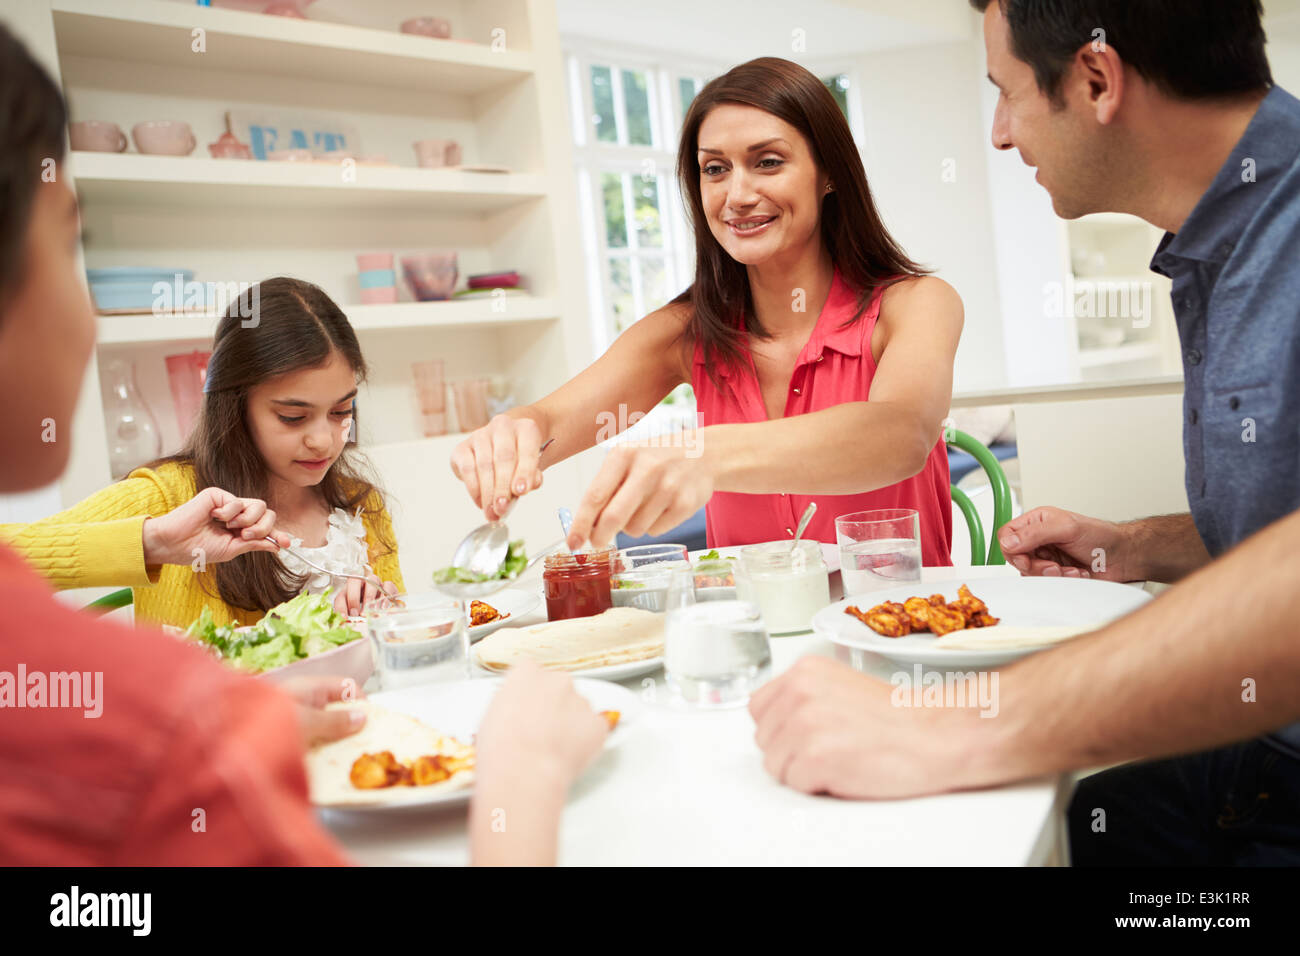 Hispanic Family Sitting At Table Eating Meal Together - Stock Image